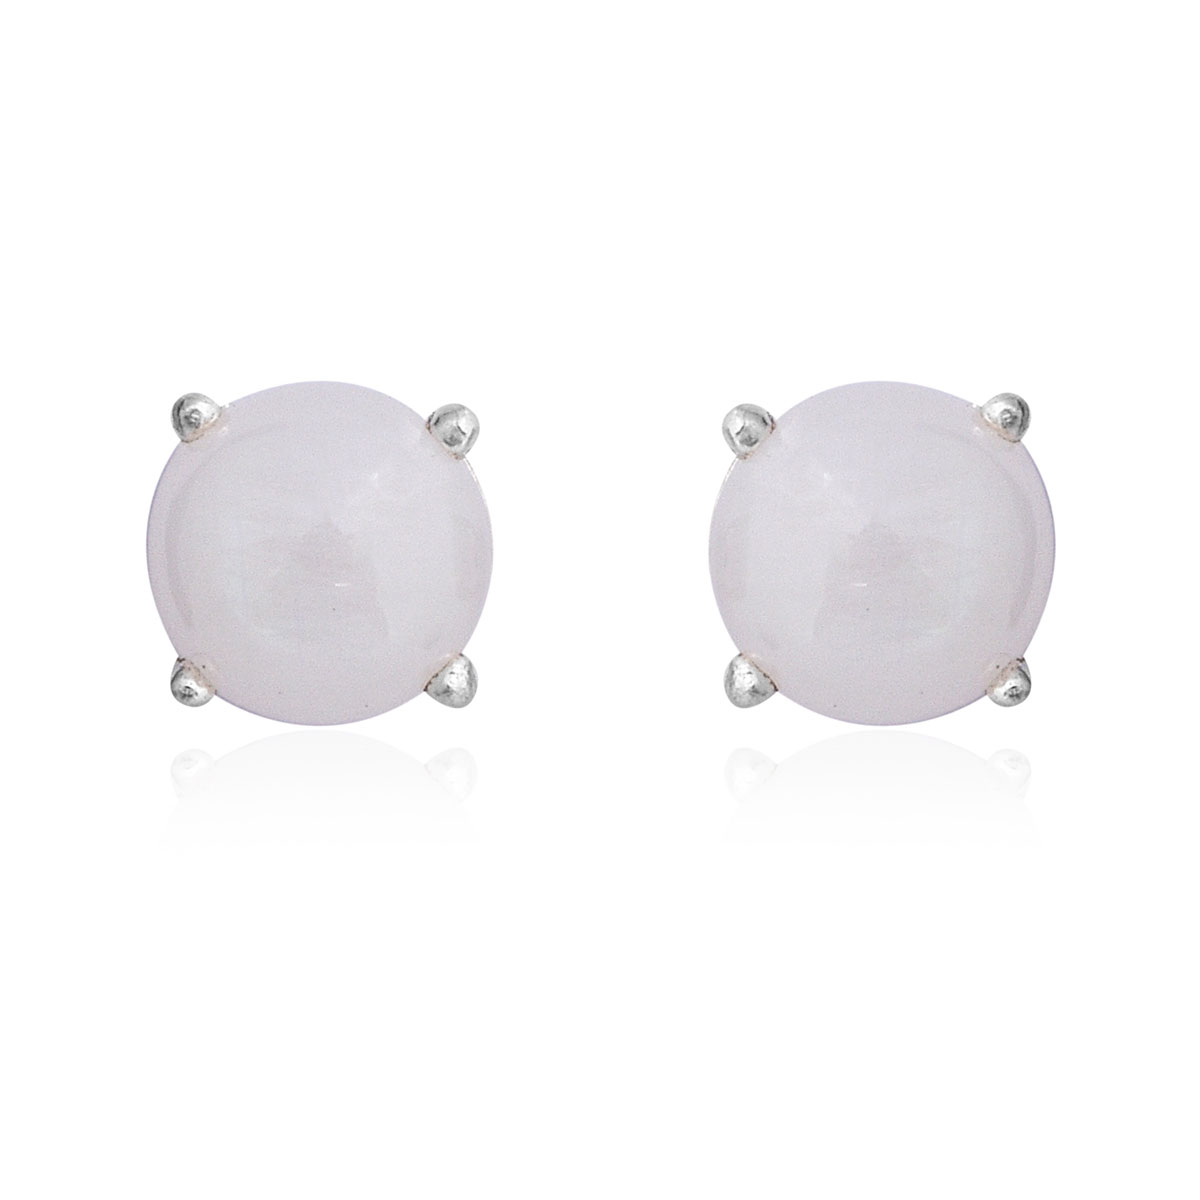 Rainbow Moonstone Stud Earrings In Sterling Silver 4 86 Ctw